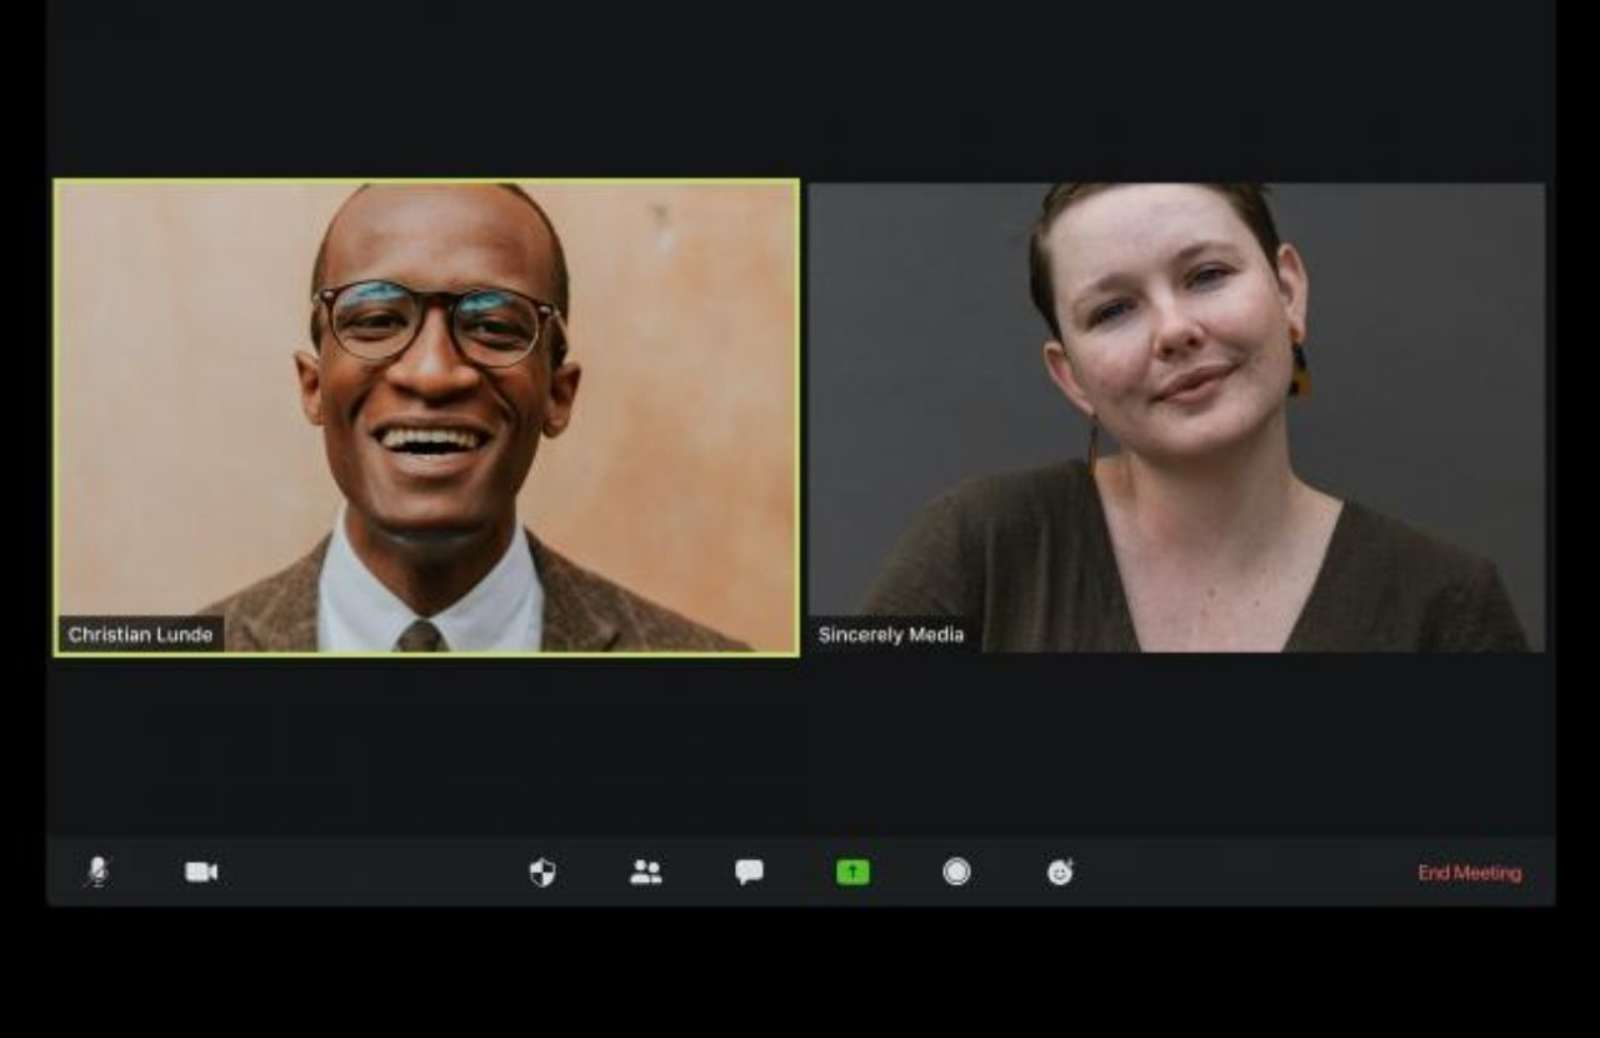 Professional man and woman in different virtual meeting windows on computer screen